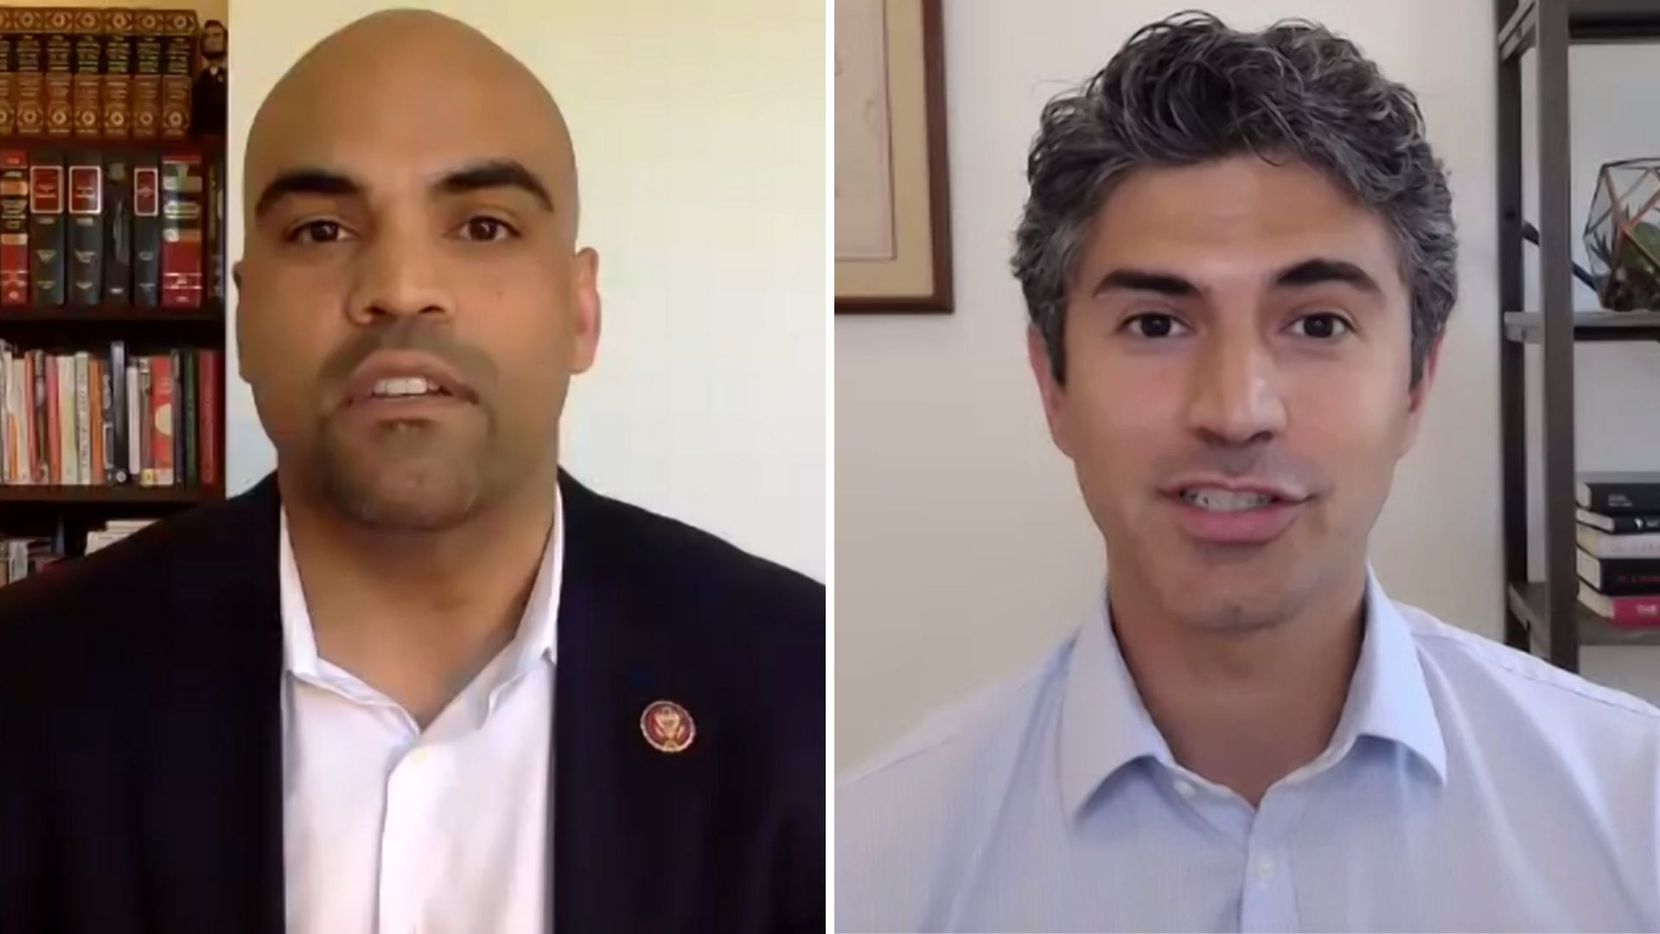 Rep. Colin Allred joins Hesam Hosseini for a Match employee town hall discussion Monday. Allred fielded questions from Dallas-based Match staff on the COVID-19 pandemic, police reform and how to get involved in efforts to see political change.